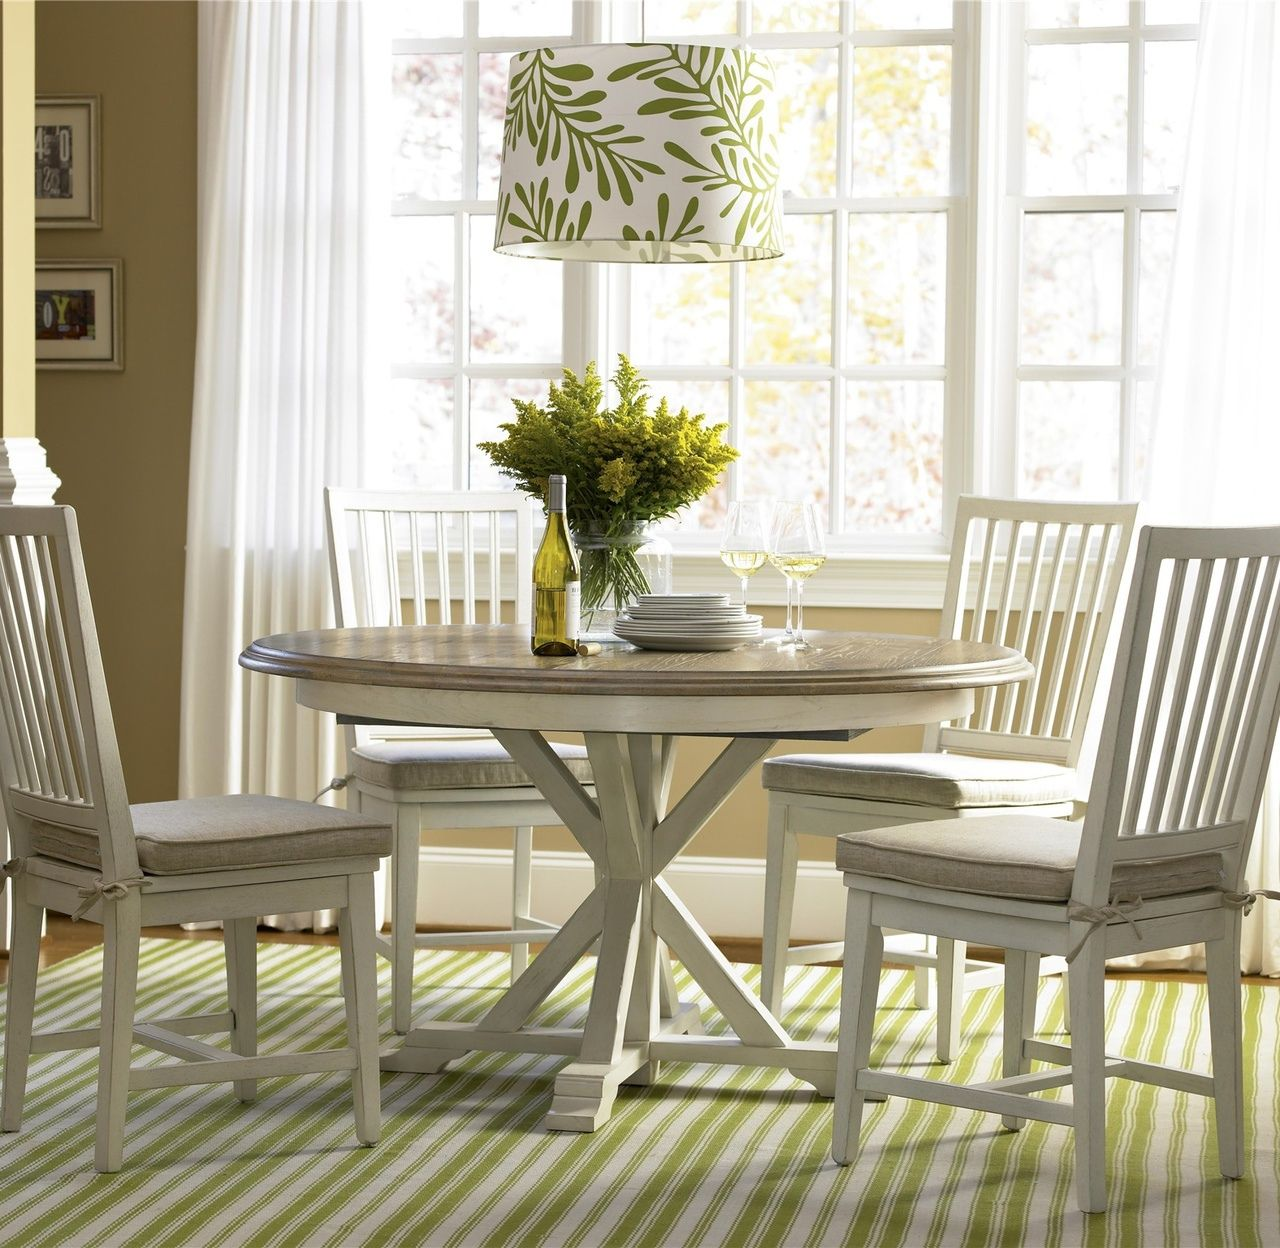 100 Beachy Kitchen Table Kitchen Trash Can Ideas Check More At